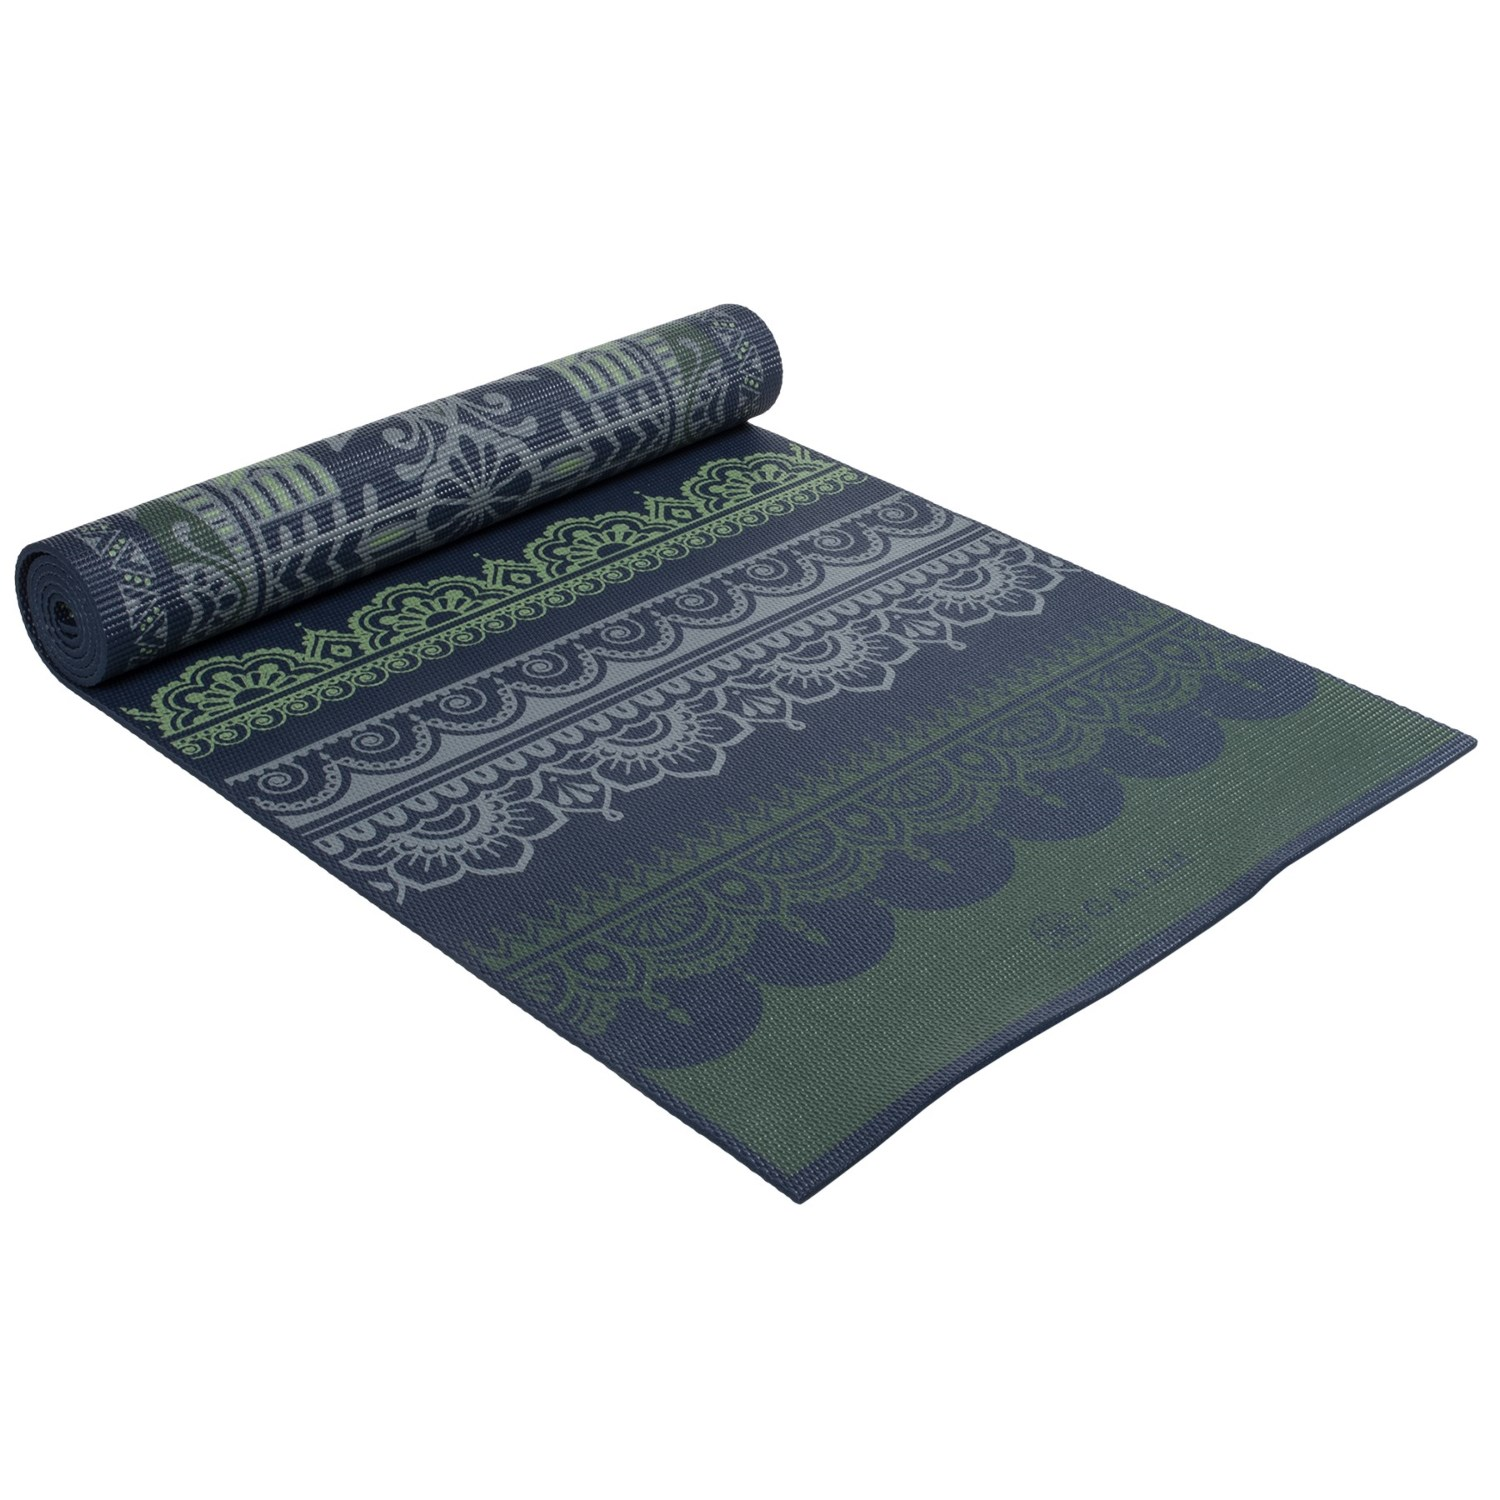 Gaiam Reversible Yoga Mat 6mm Save 65